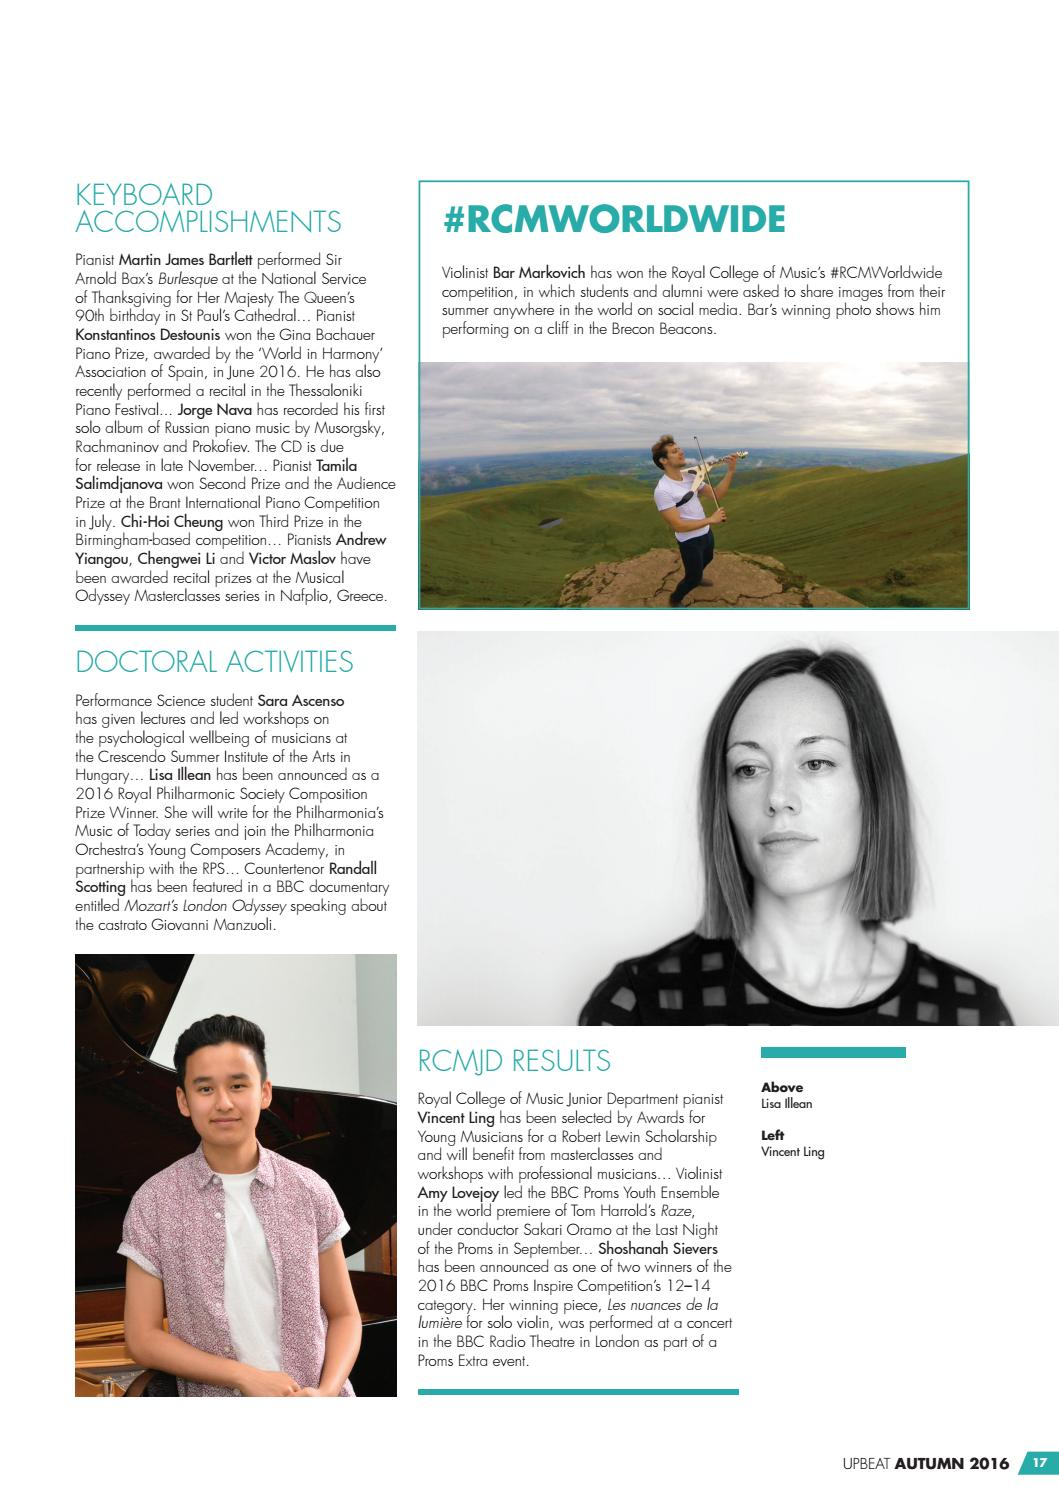 Upbeat Autumn 2016 by Royal College of Music - issuu